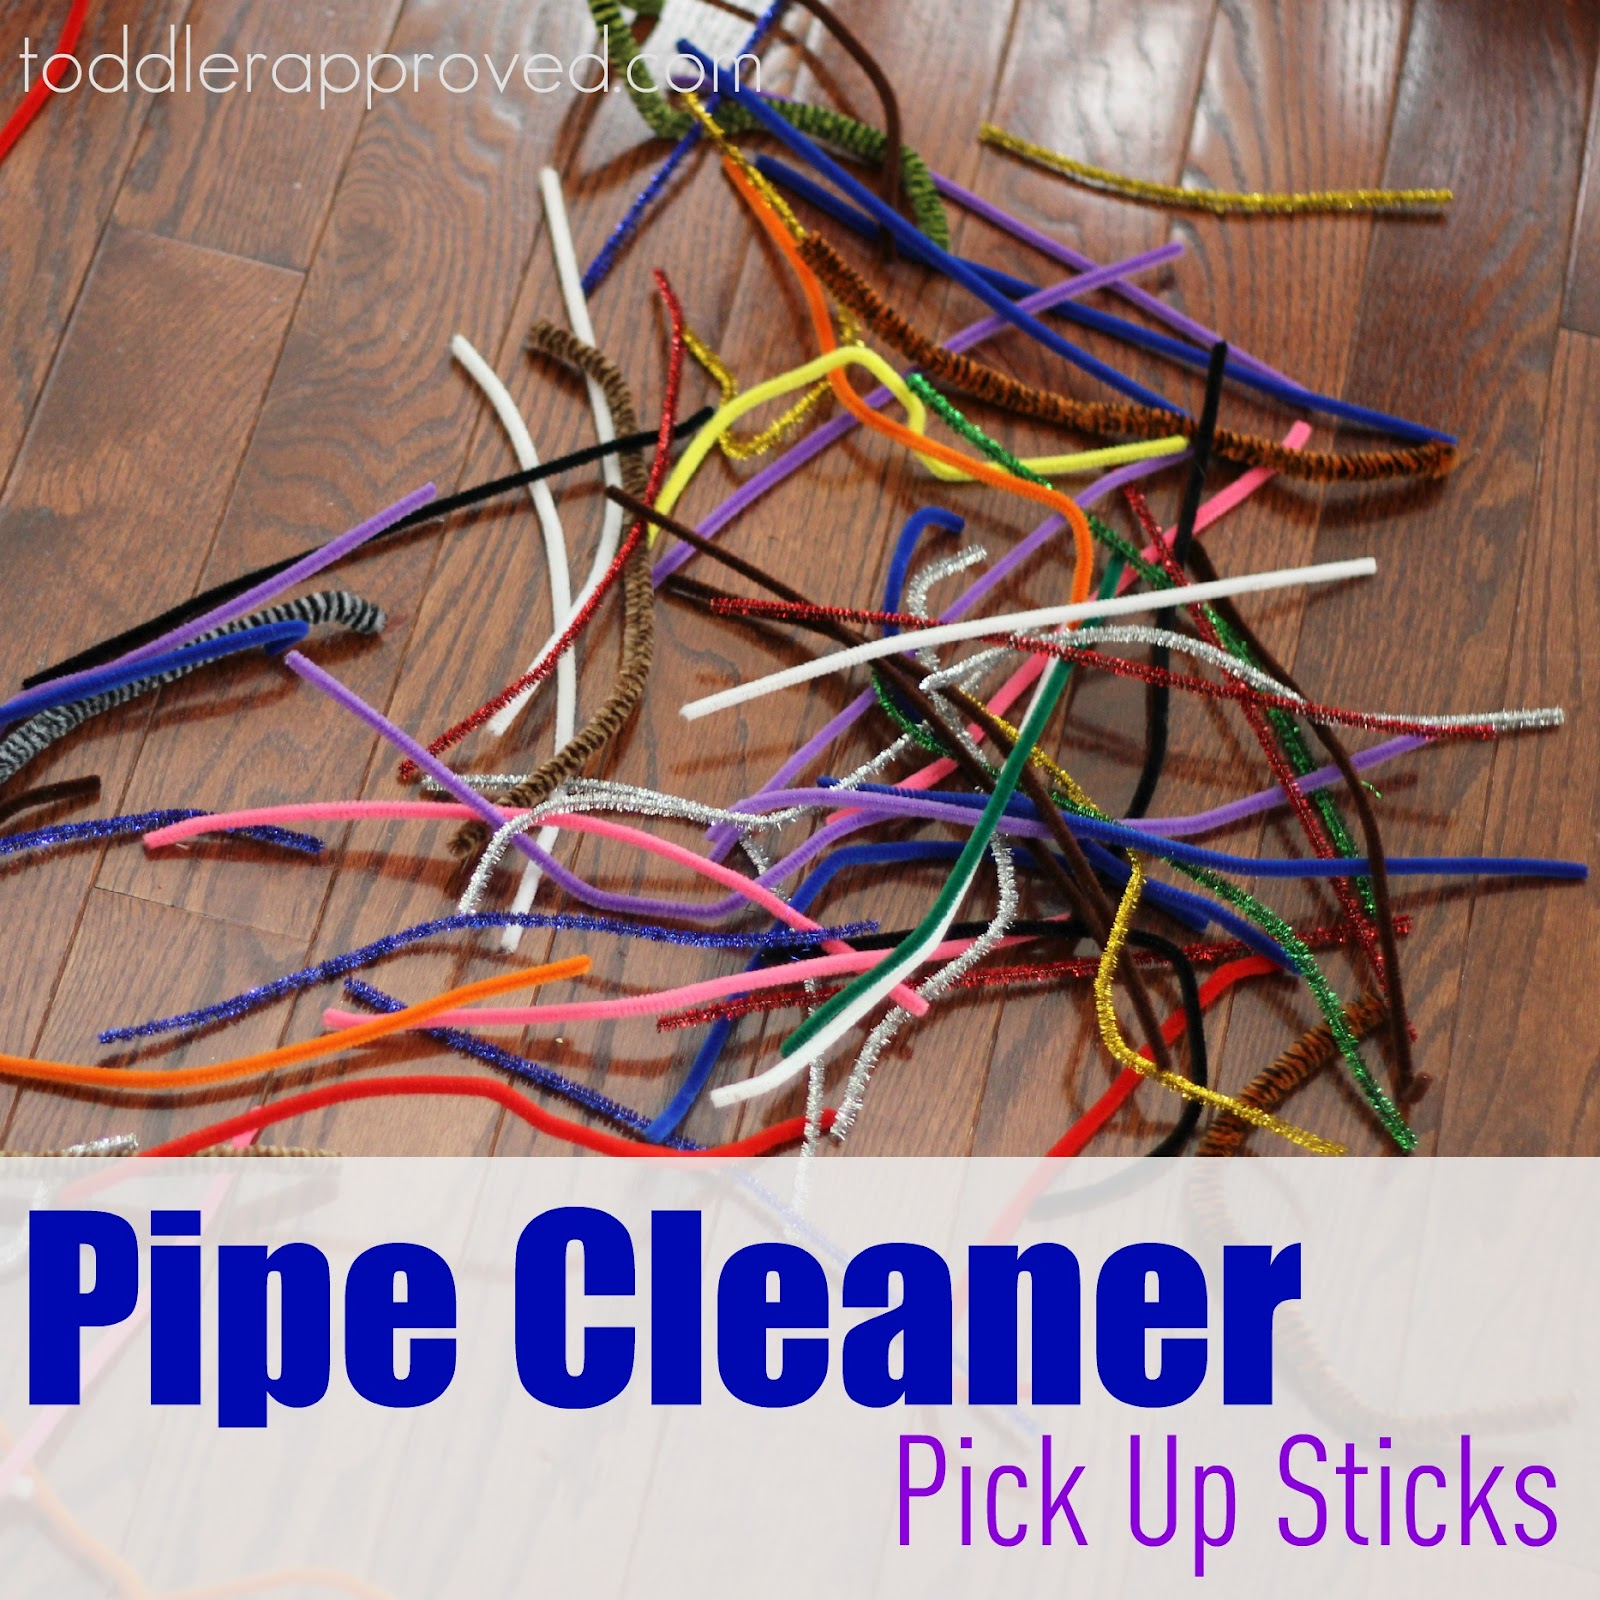 Toddler Approved Pipe Cleaner Pick Up Sticks Electrical Wiring Games